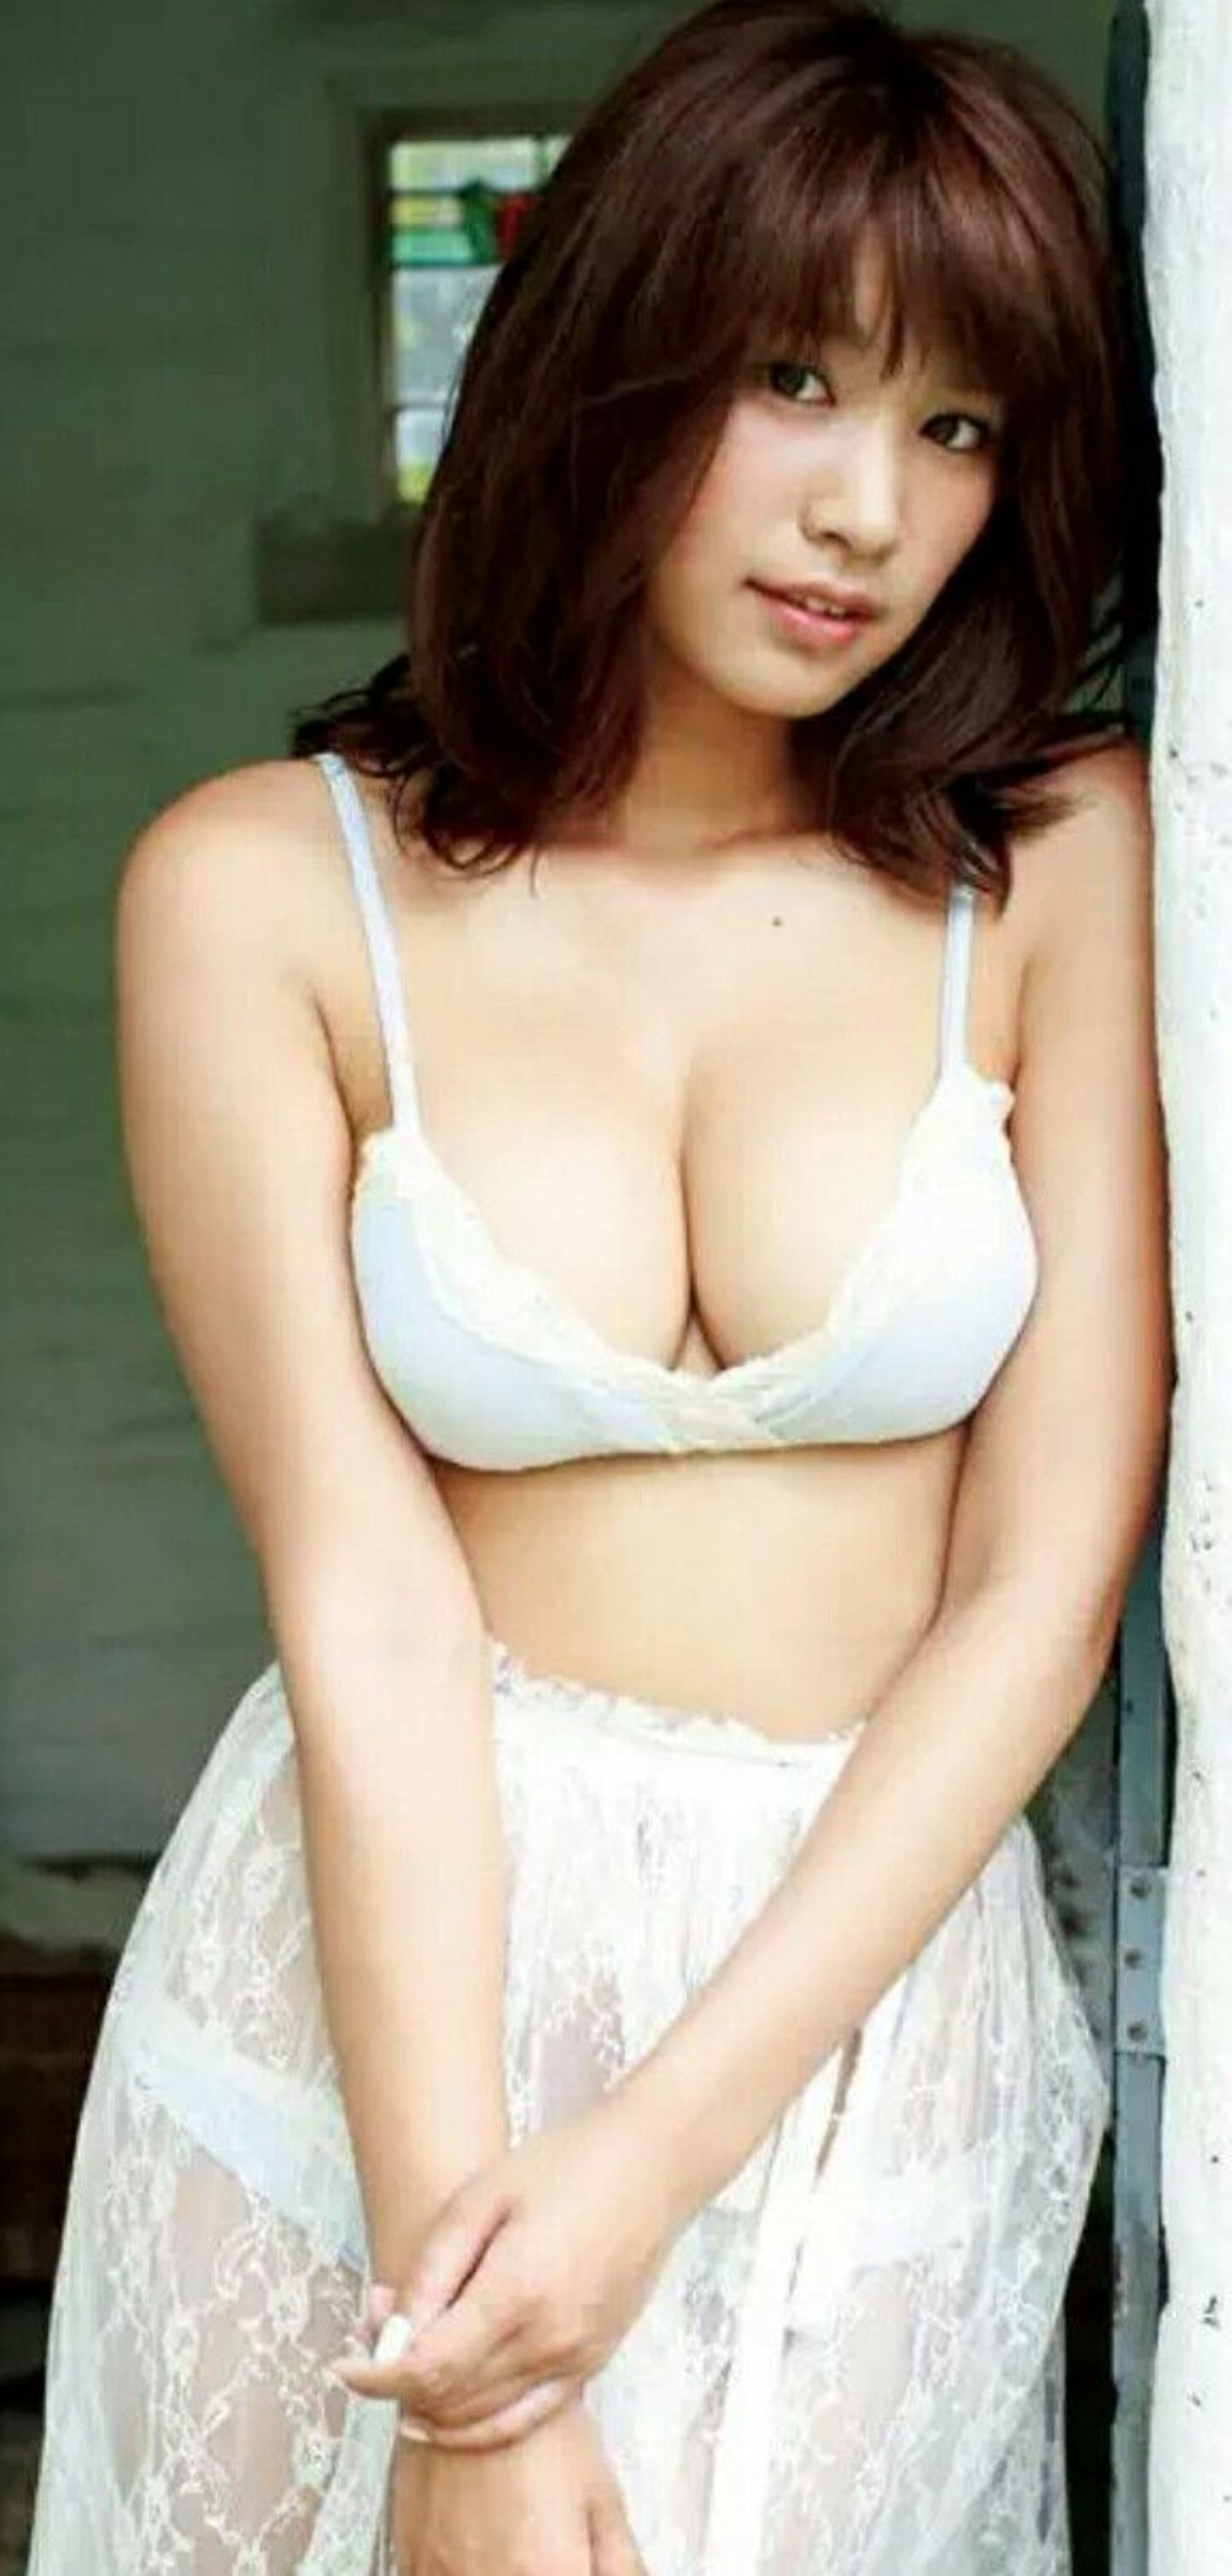 Hot Sexy Asian Girls bra Photos Gallery